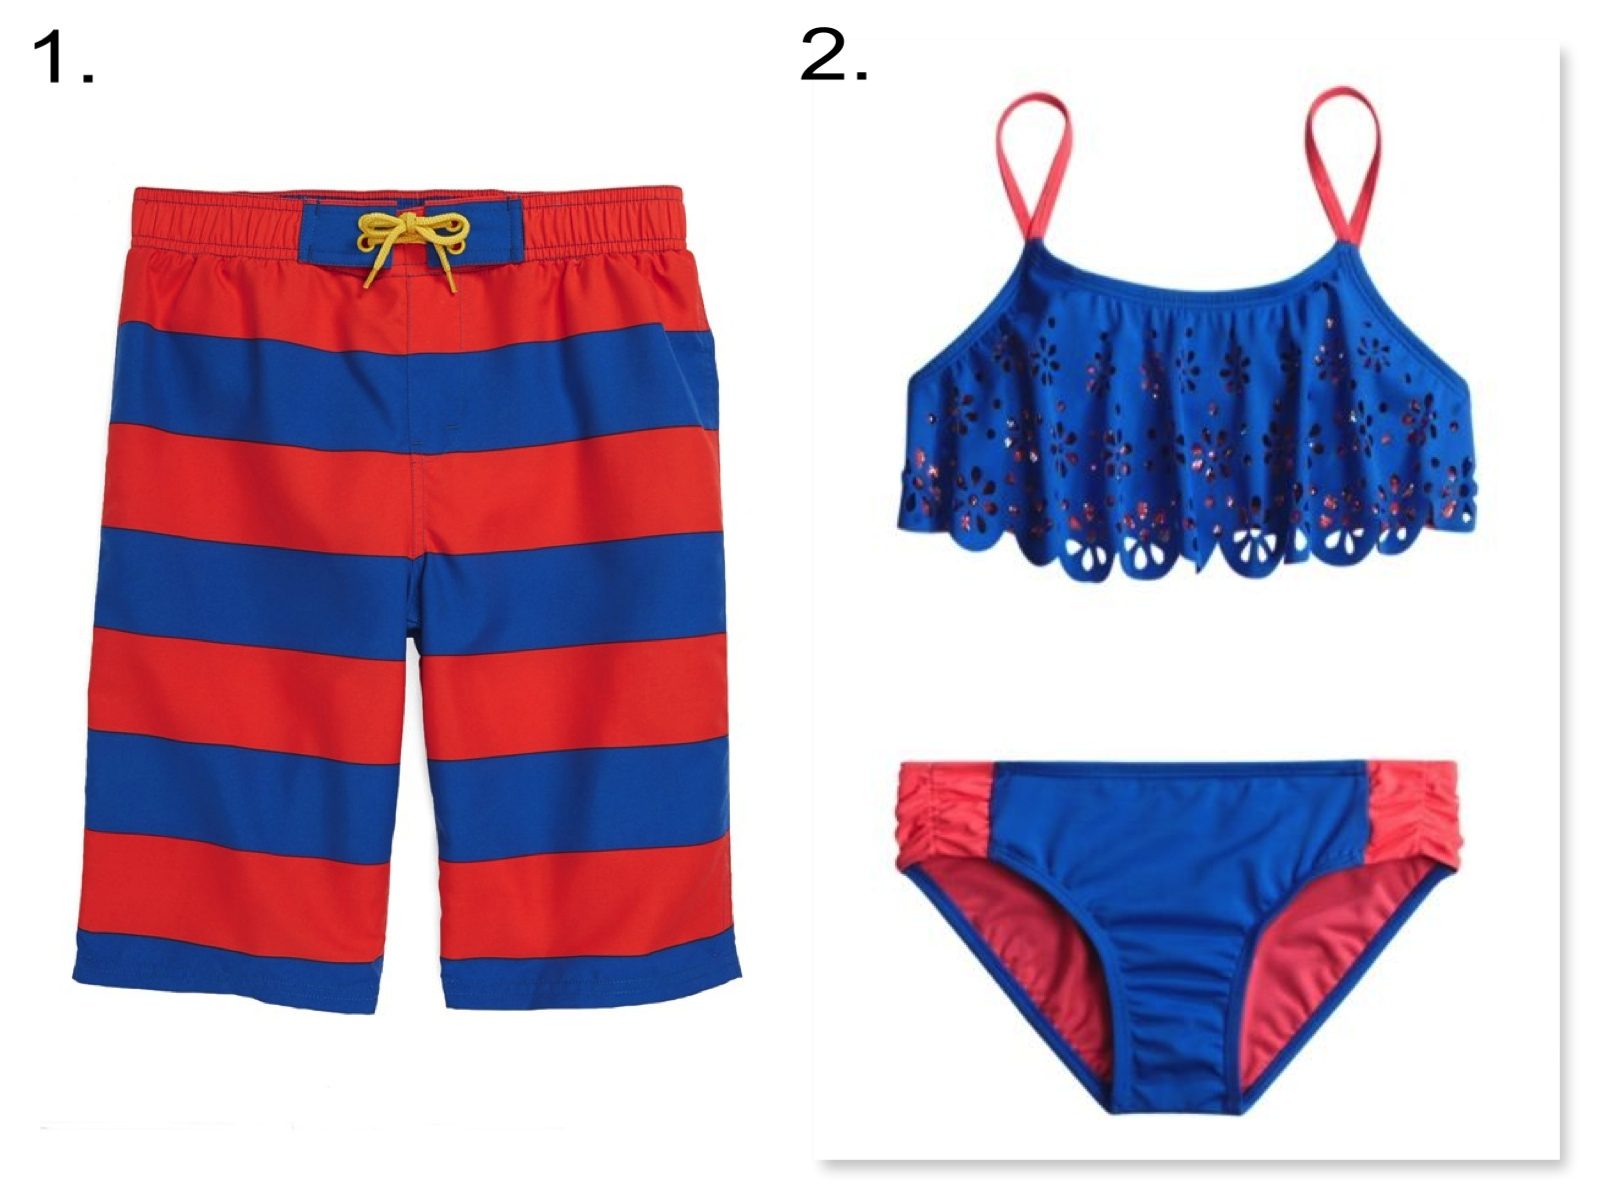 Your little ones will look cute together in these vibrant color aquatic blue & bright red fun Swimsuits.  1.  Tucker + Tate 'Maximus' Swim Trunks  |2.  Justice Cutout Flounce Bikini Swimsuit